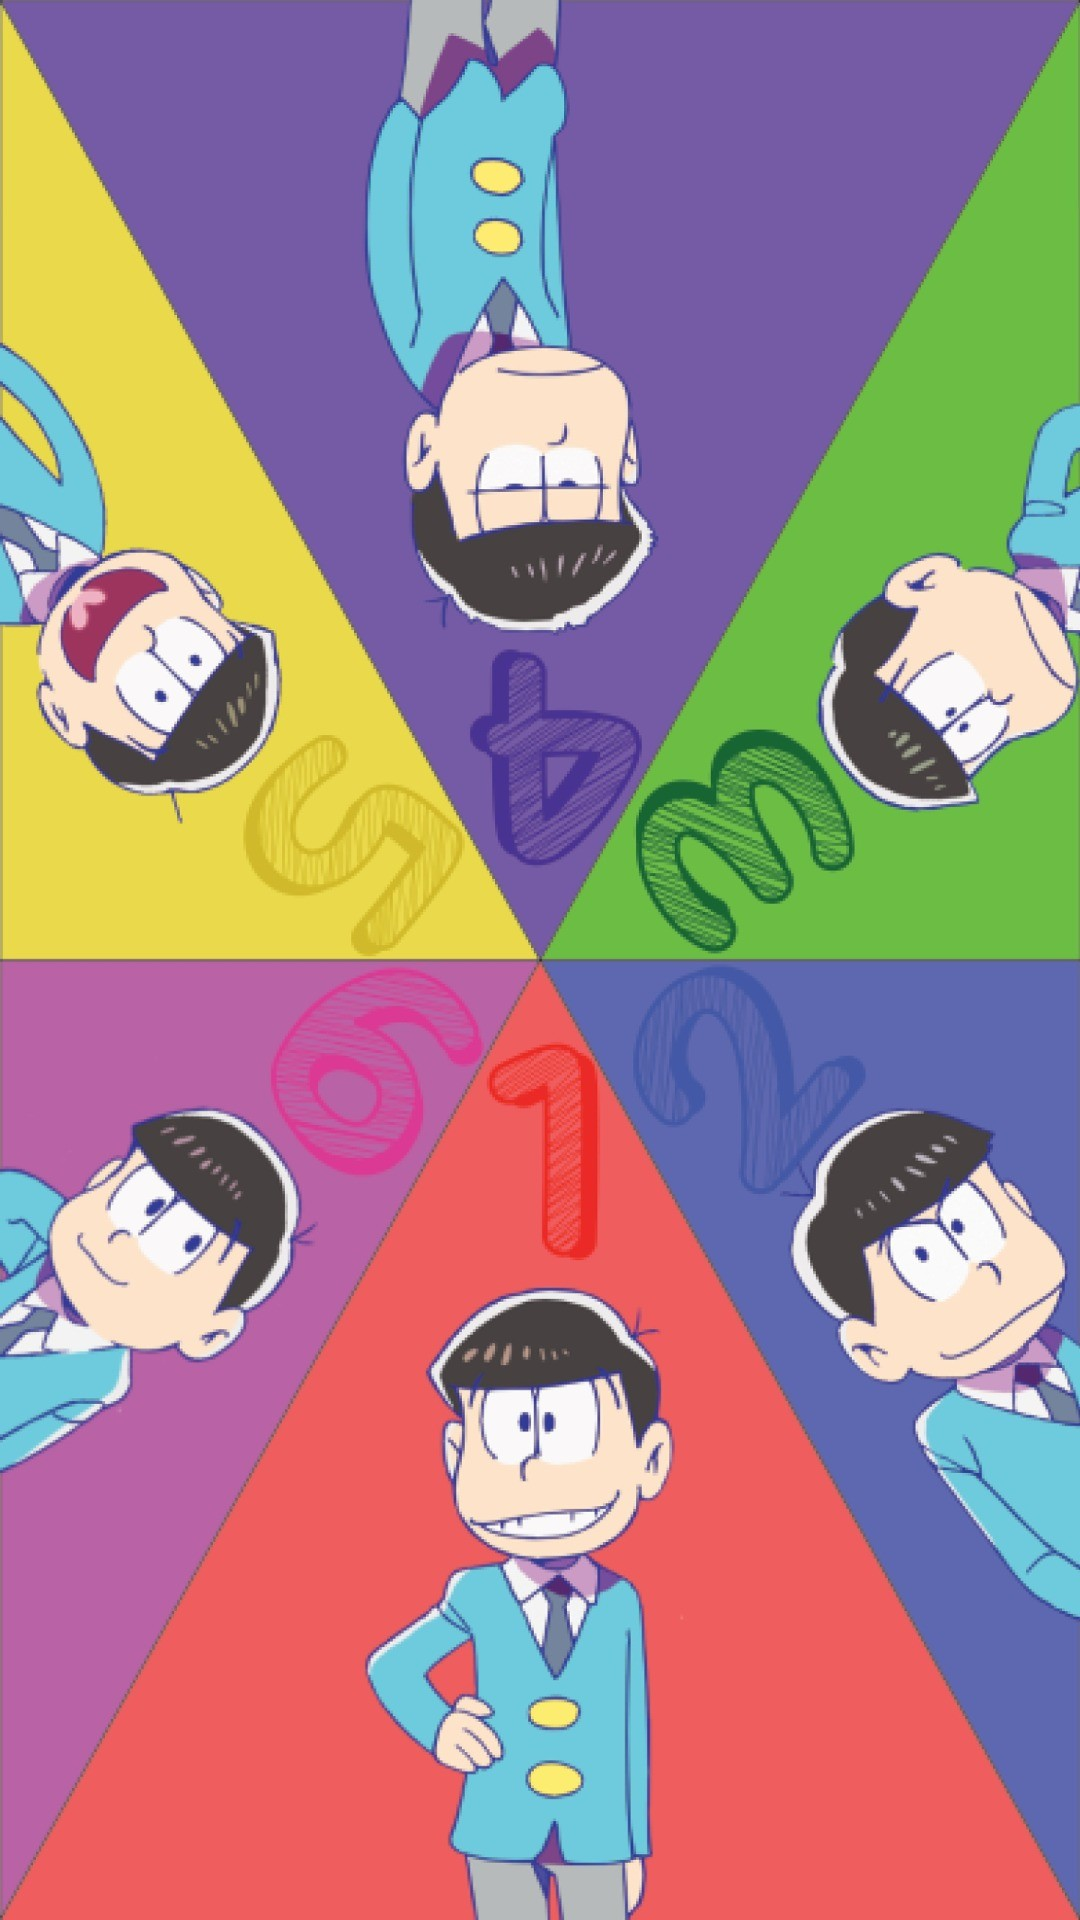 I made an Osomatsu-San wallpaper in shop. The dimensions are 1334 x 750